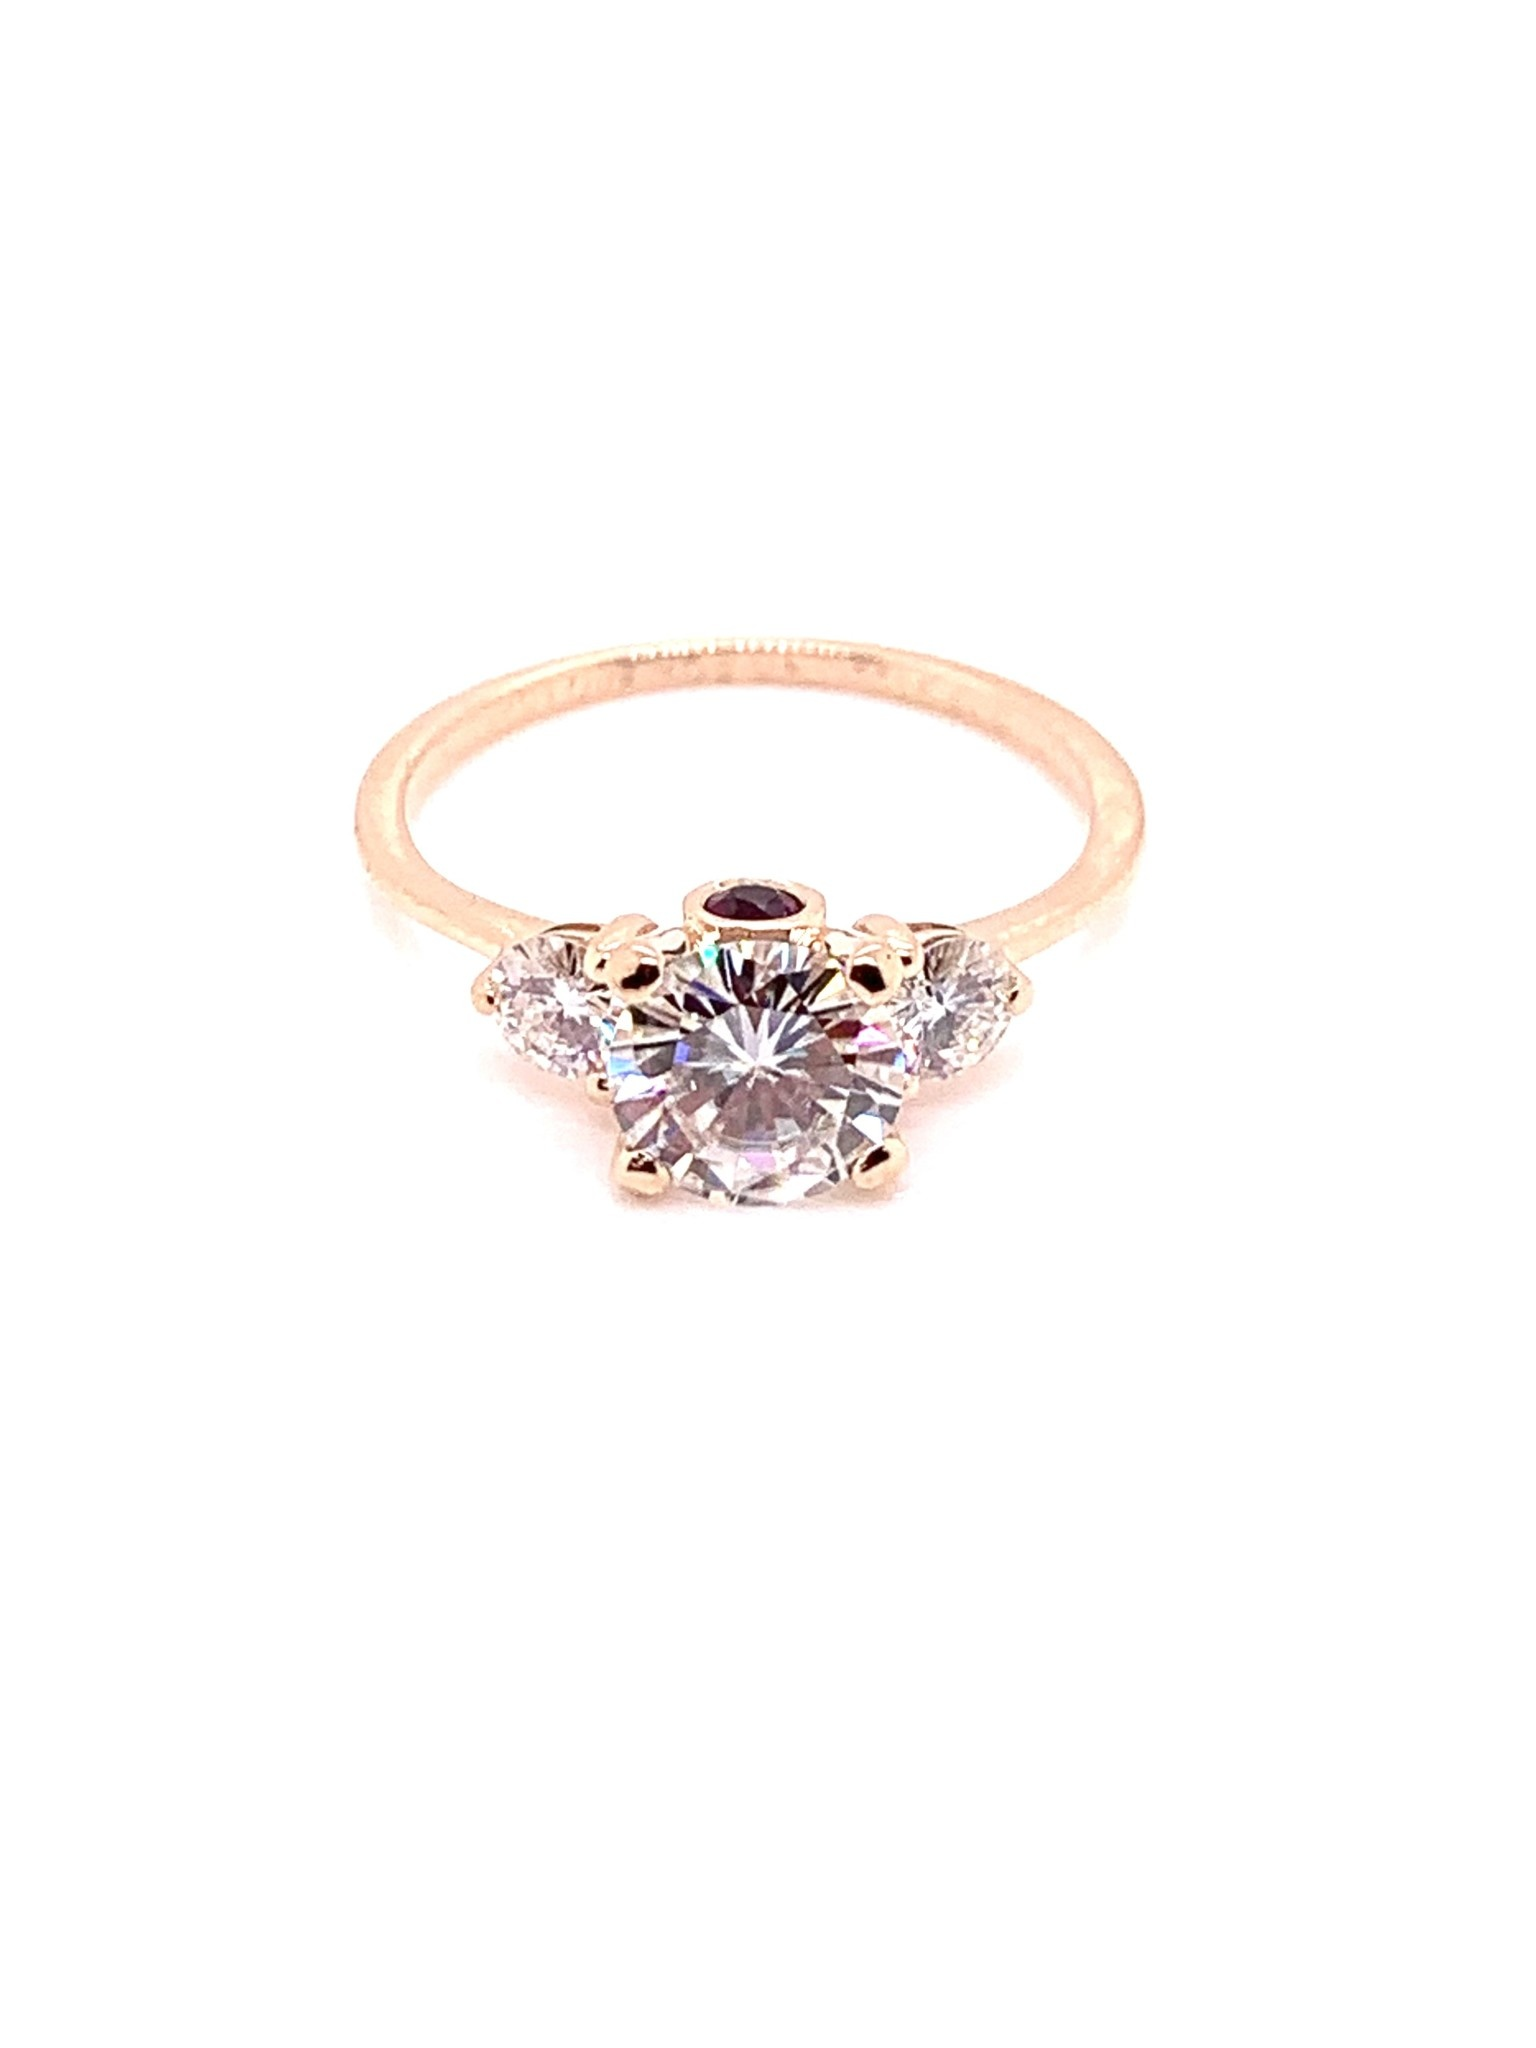 14K rose gold 3-stone moissanite ring with rubies